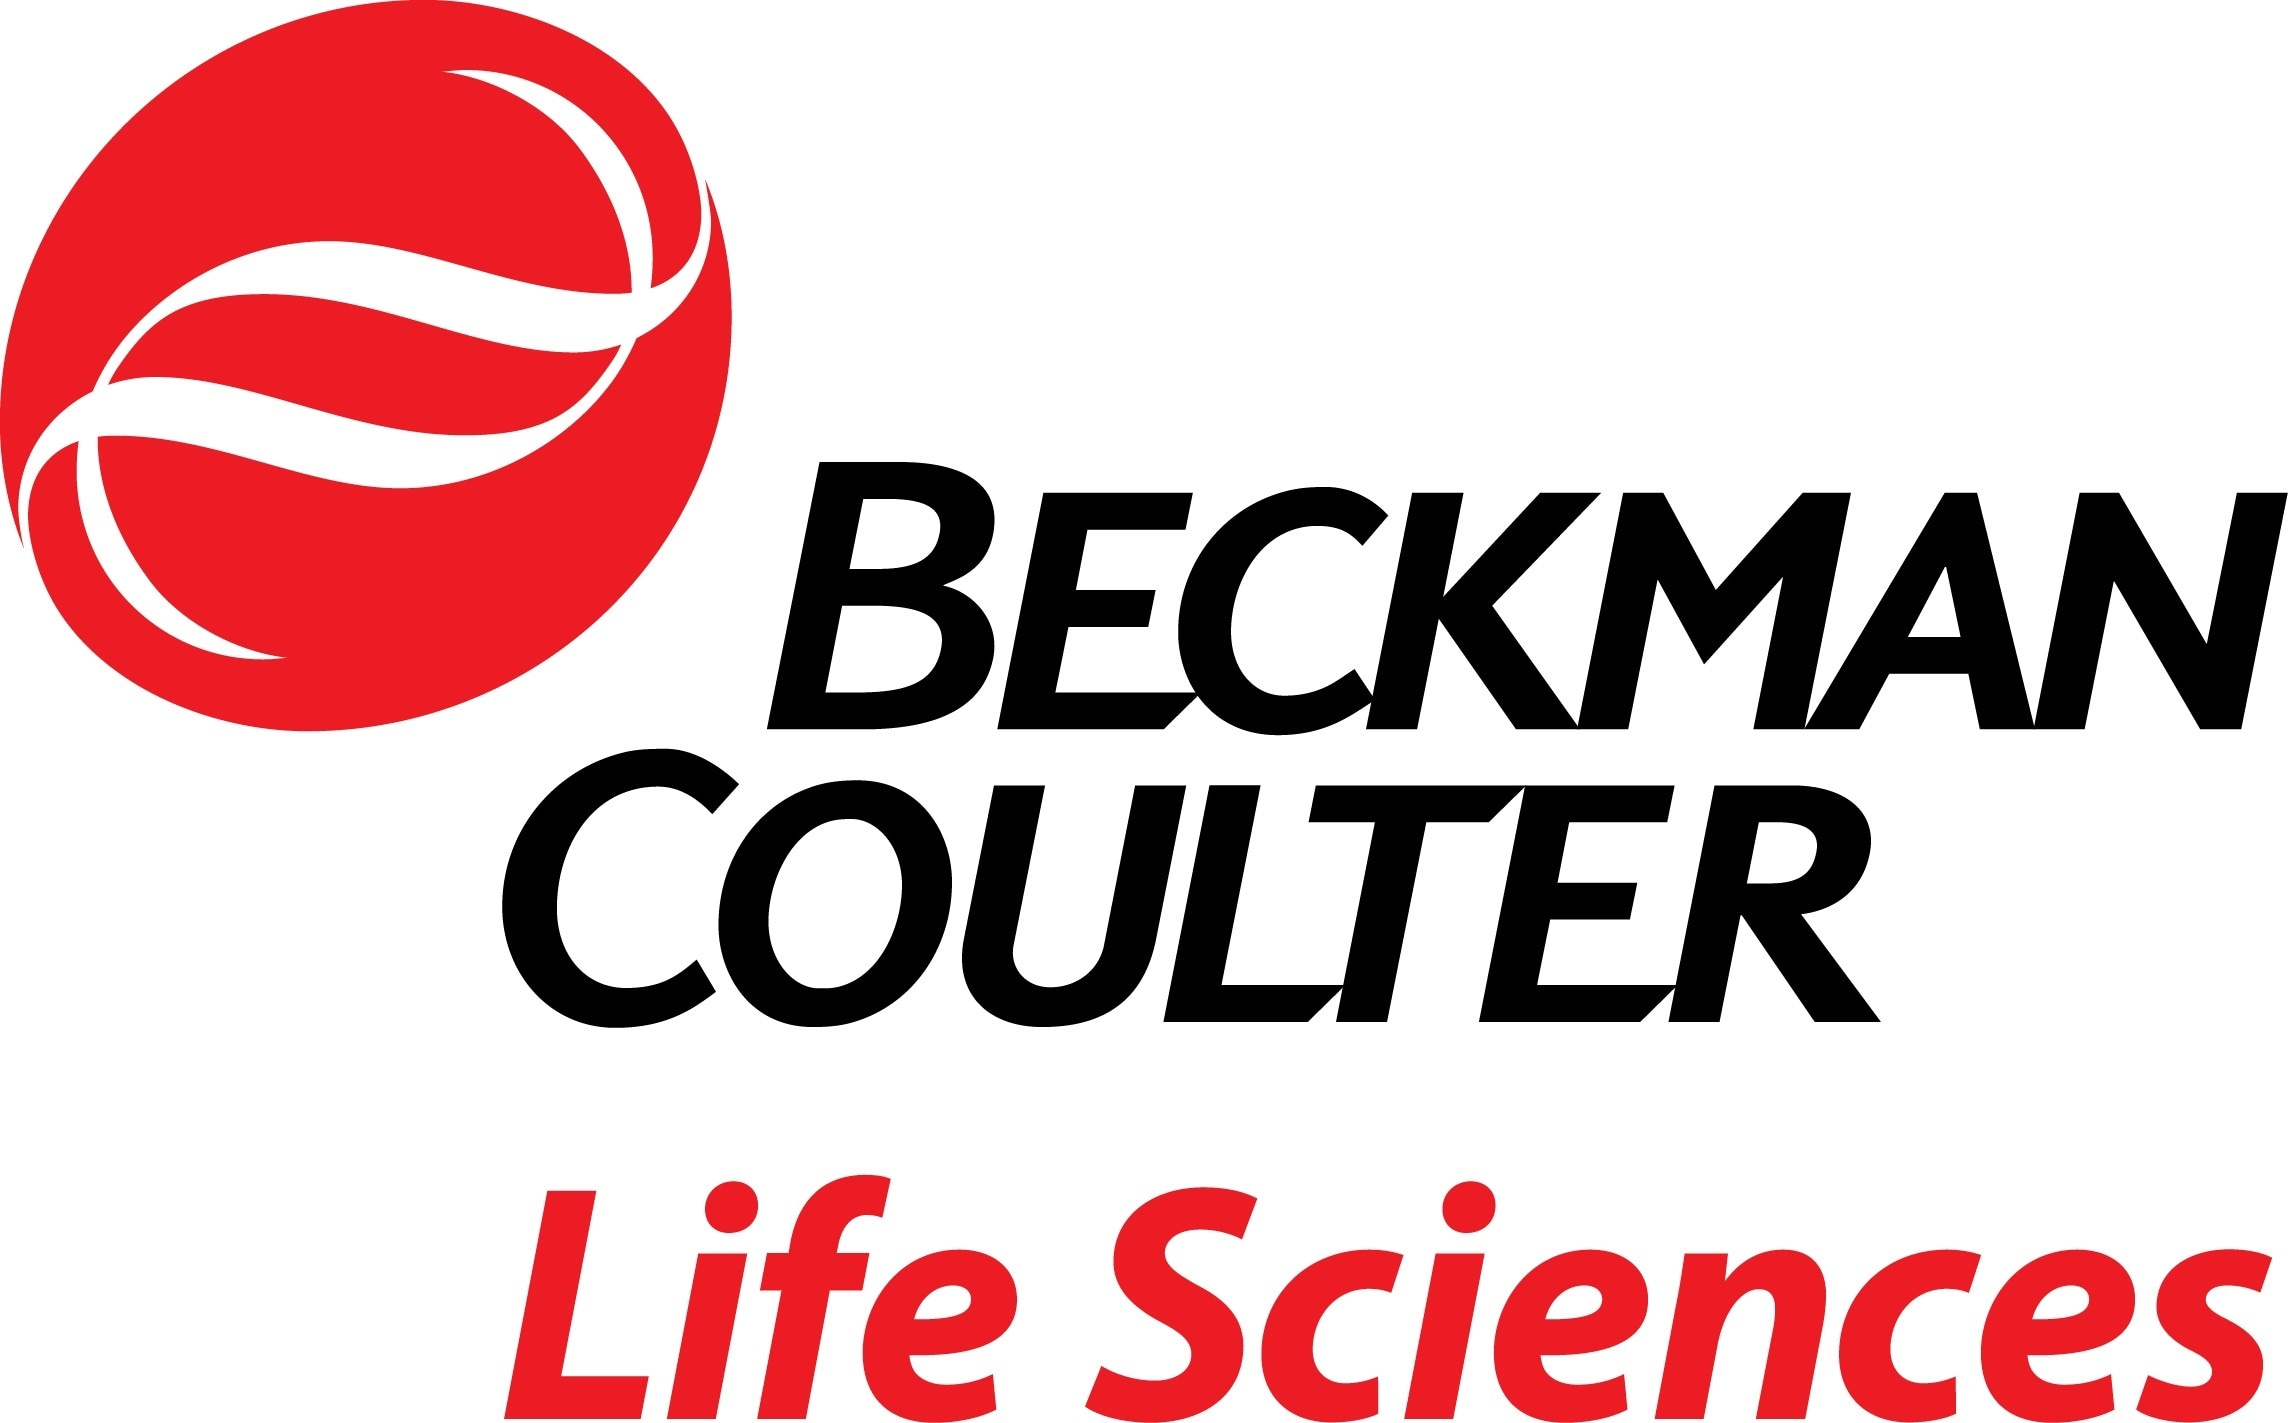 Beckman Coulter Life Sciences - Auto-Cellular and Proteomics